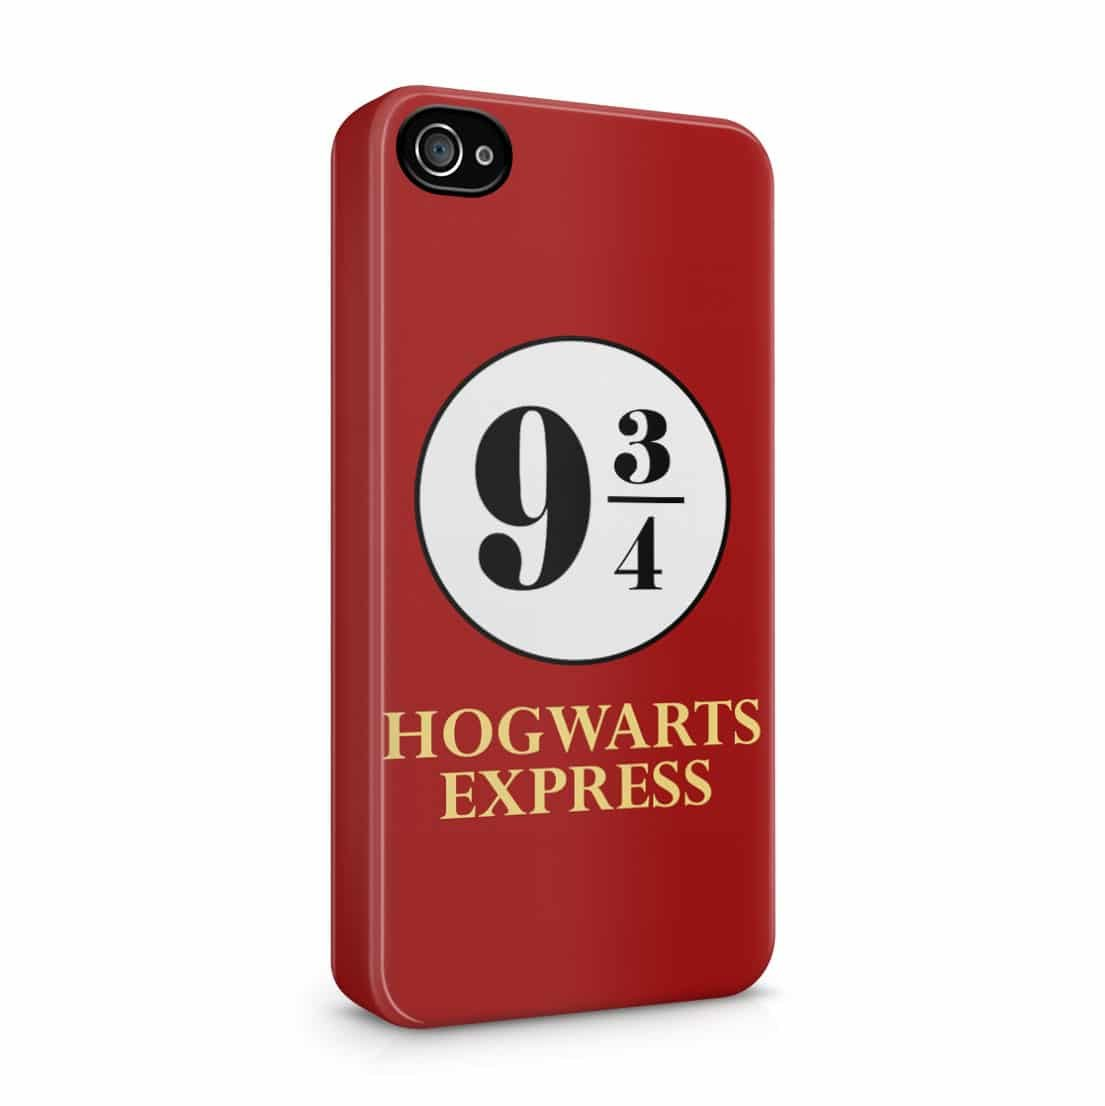 Harry Potter Hogwarts Express 9 3/4 iPhone 4 / 4S Hard Plastic Phone Case Cover